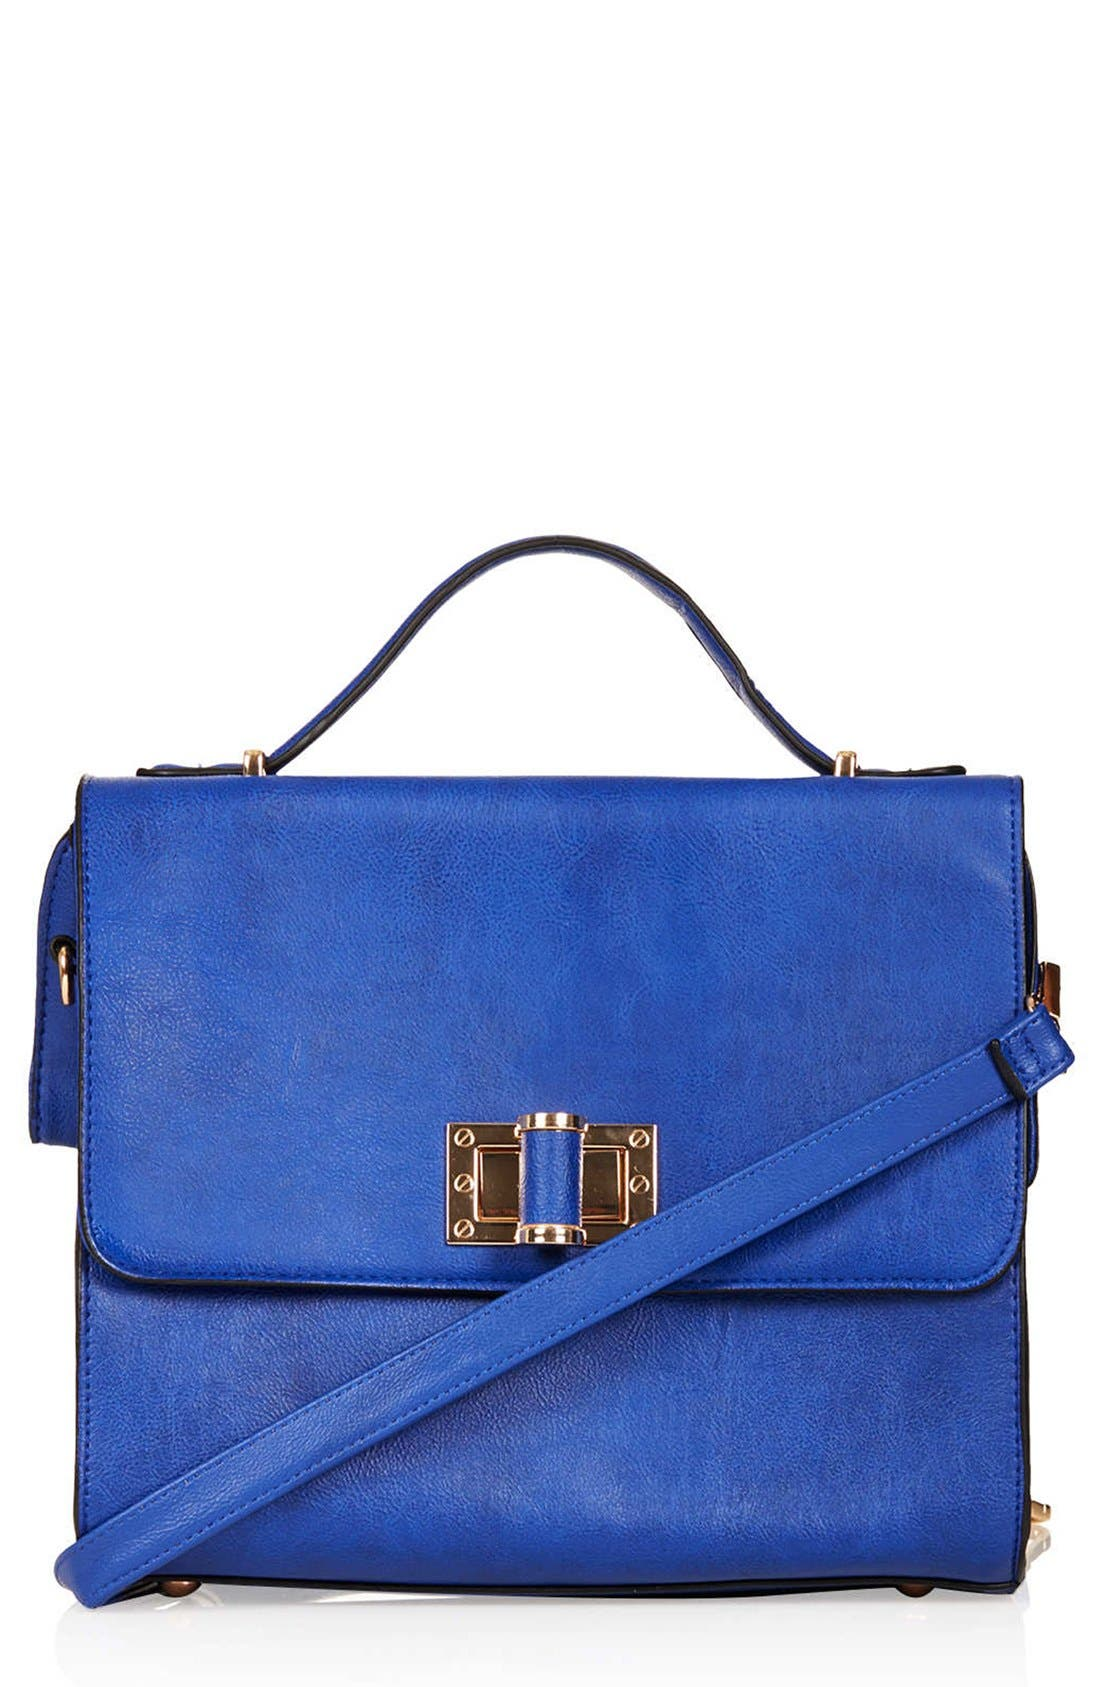 Main Image - Topshop 'Margot' Carryall Satchel